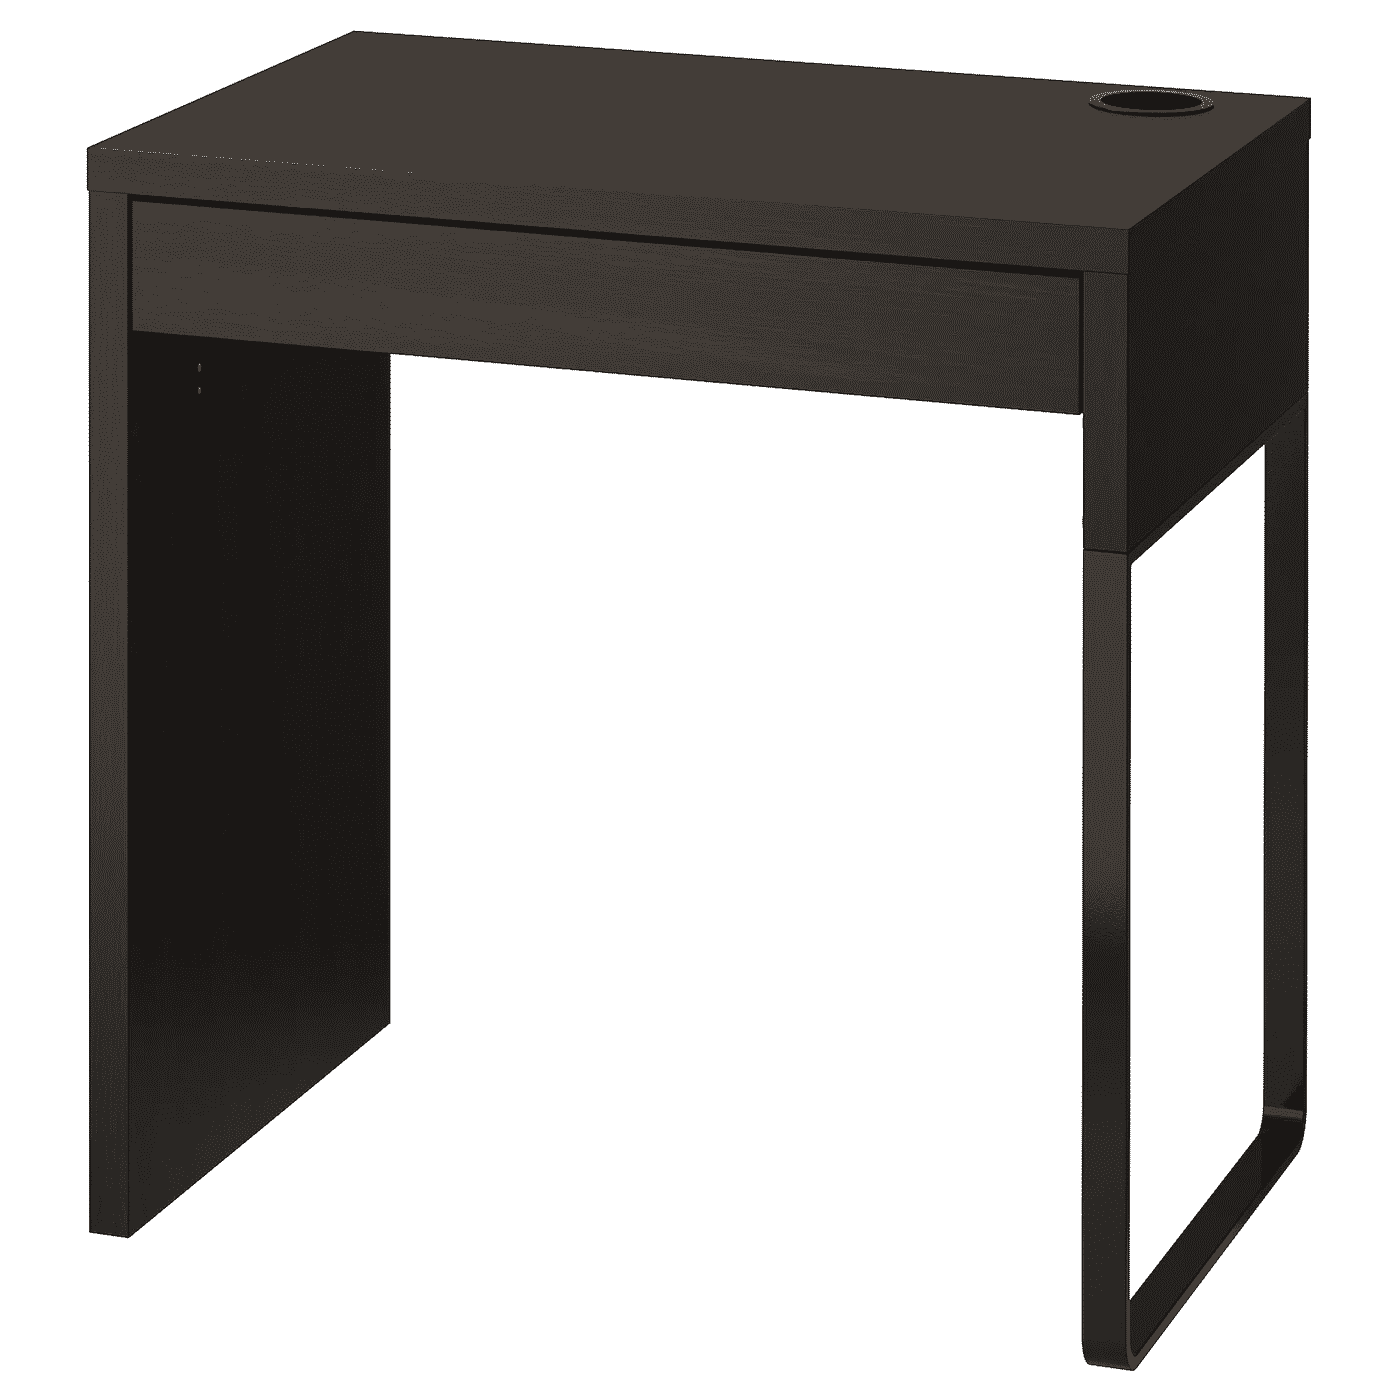 MICKE desk black-brown